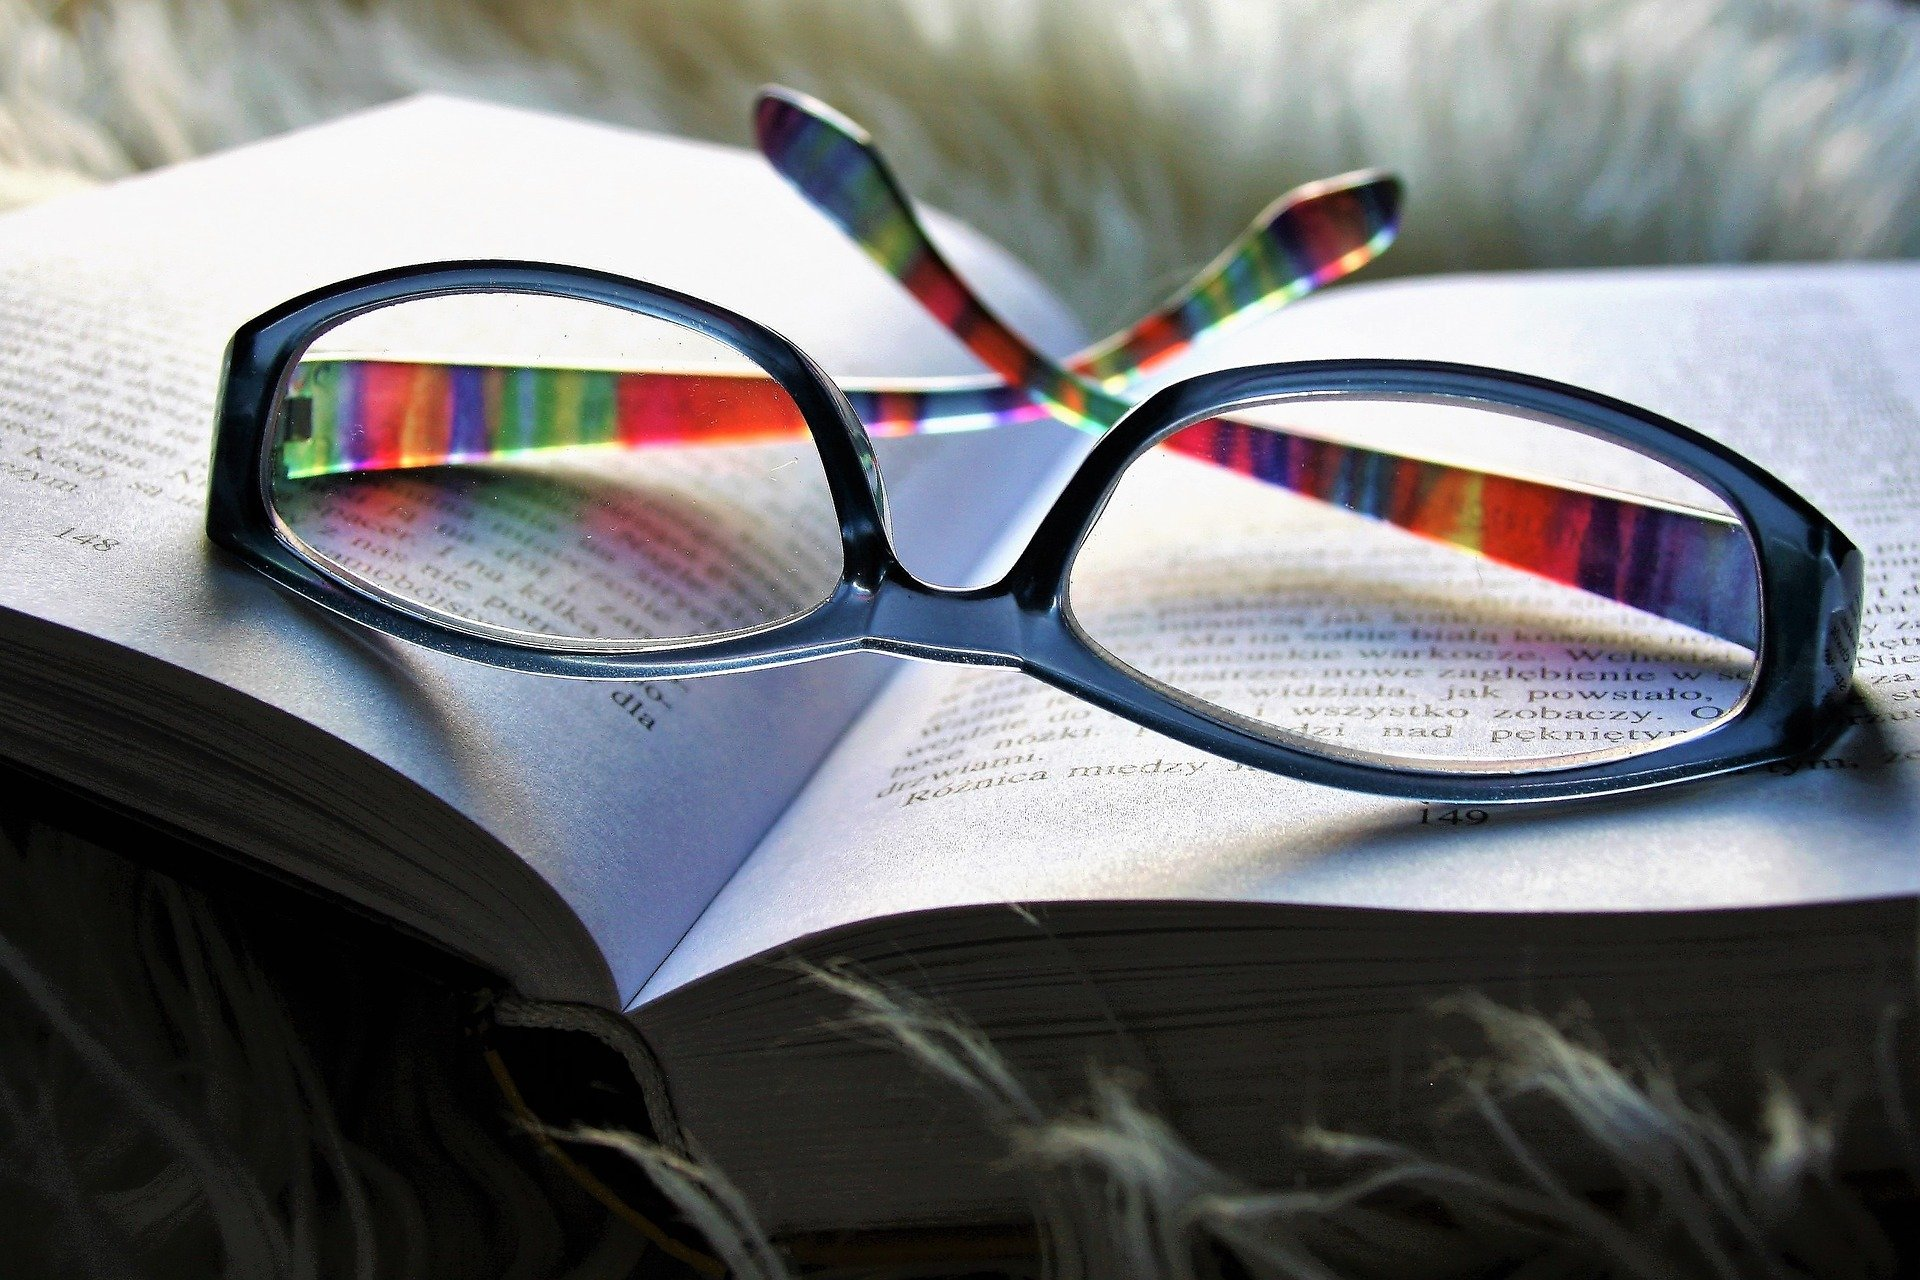 A book lies open in grass with a pair of reading glasses resting on top. The frames are blue and the arms are multi